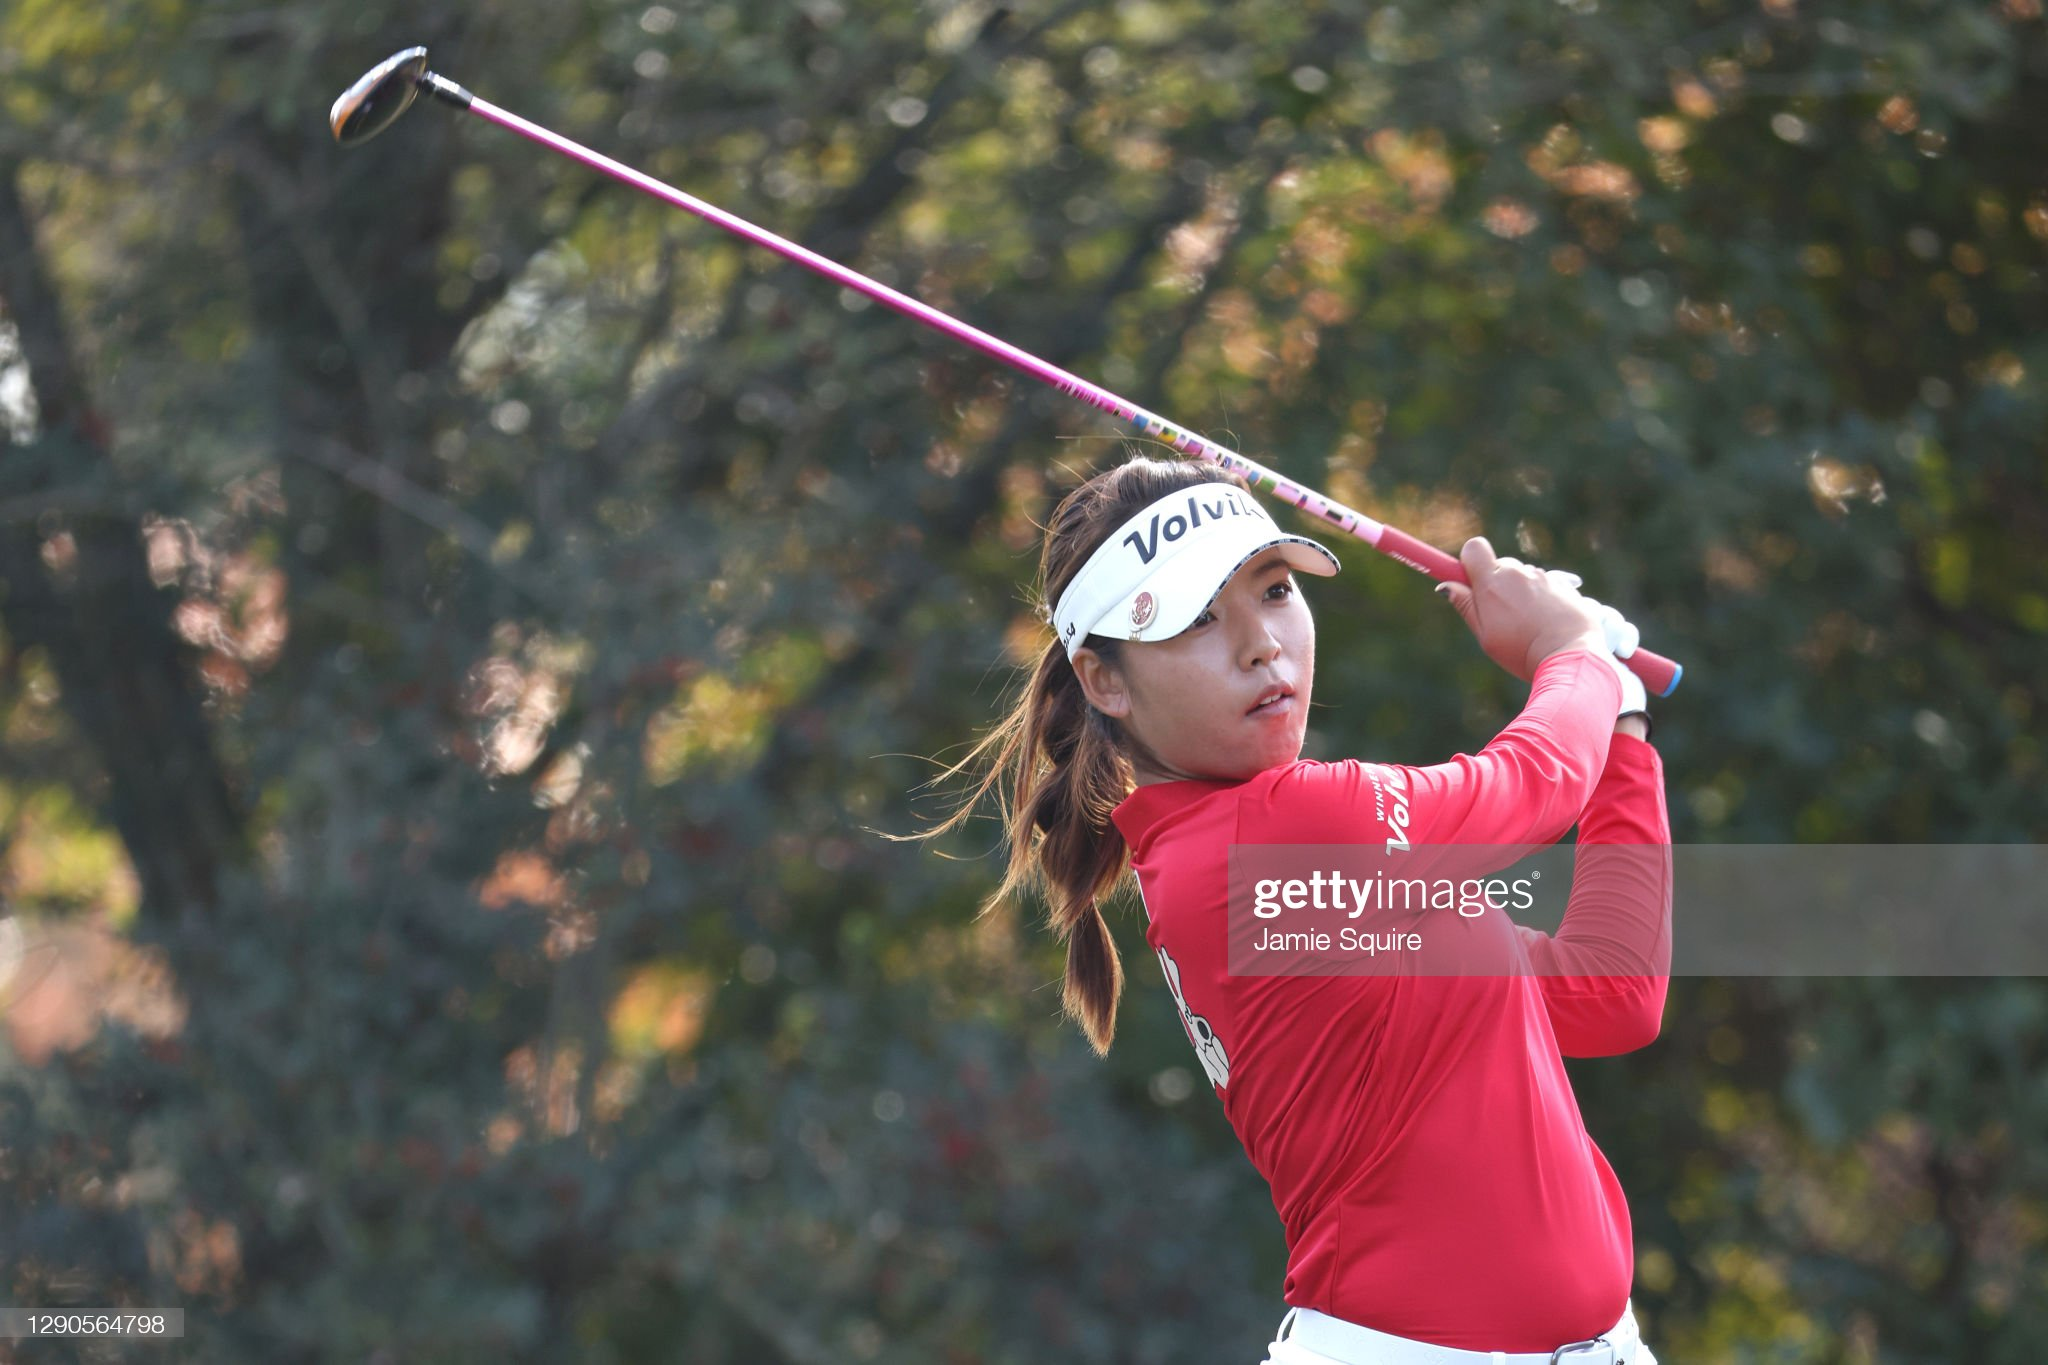 https://media.gettyimages.com/photos/mi-hyang-lee-of-korea-plays-her-shot-from-the-12th-tee-during-the-picture-id1290564798?s=2048x2048